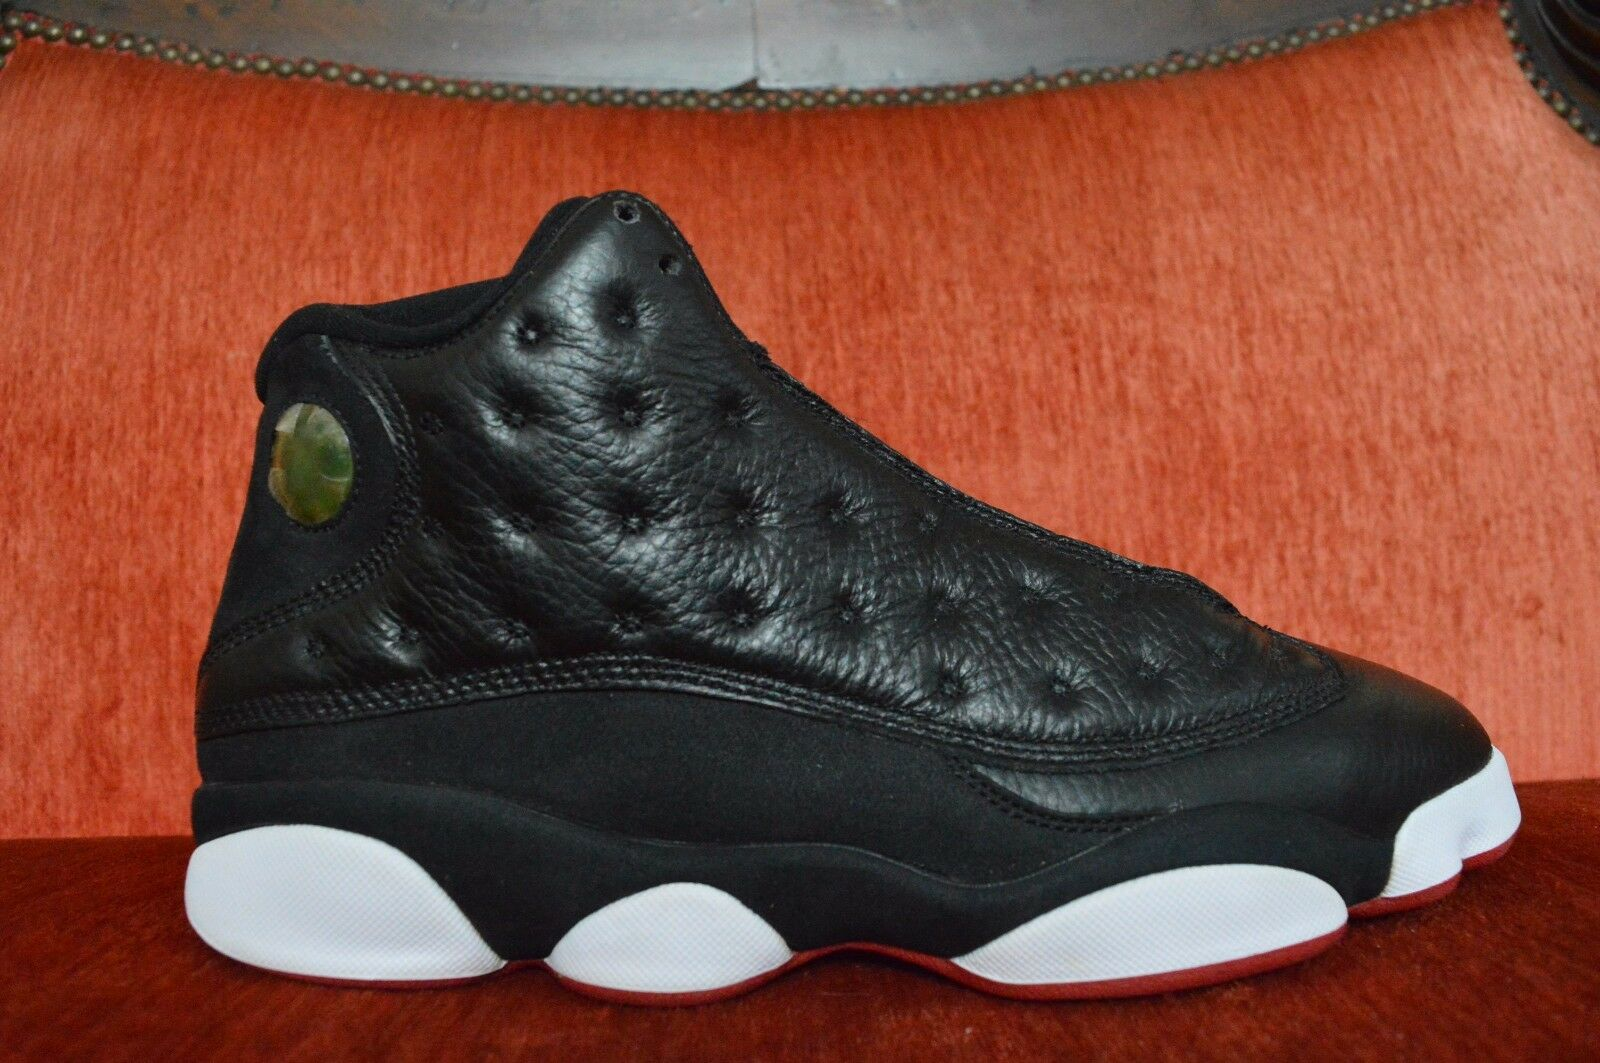 Nike Air Jordan XIII 13 Retro Nero/Red-White 2011 Playoffs 414571-001 Size 10.5